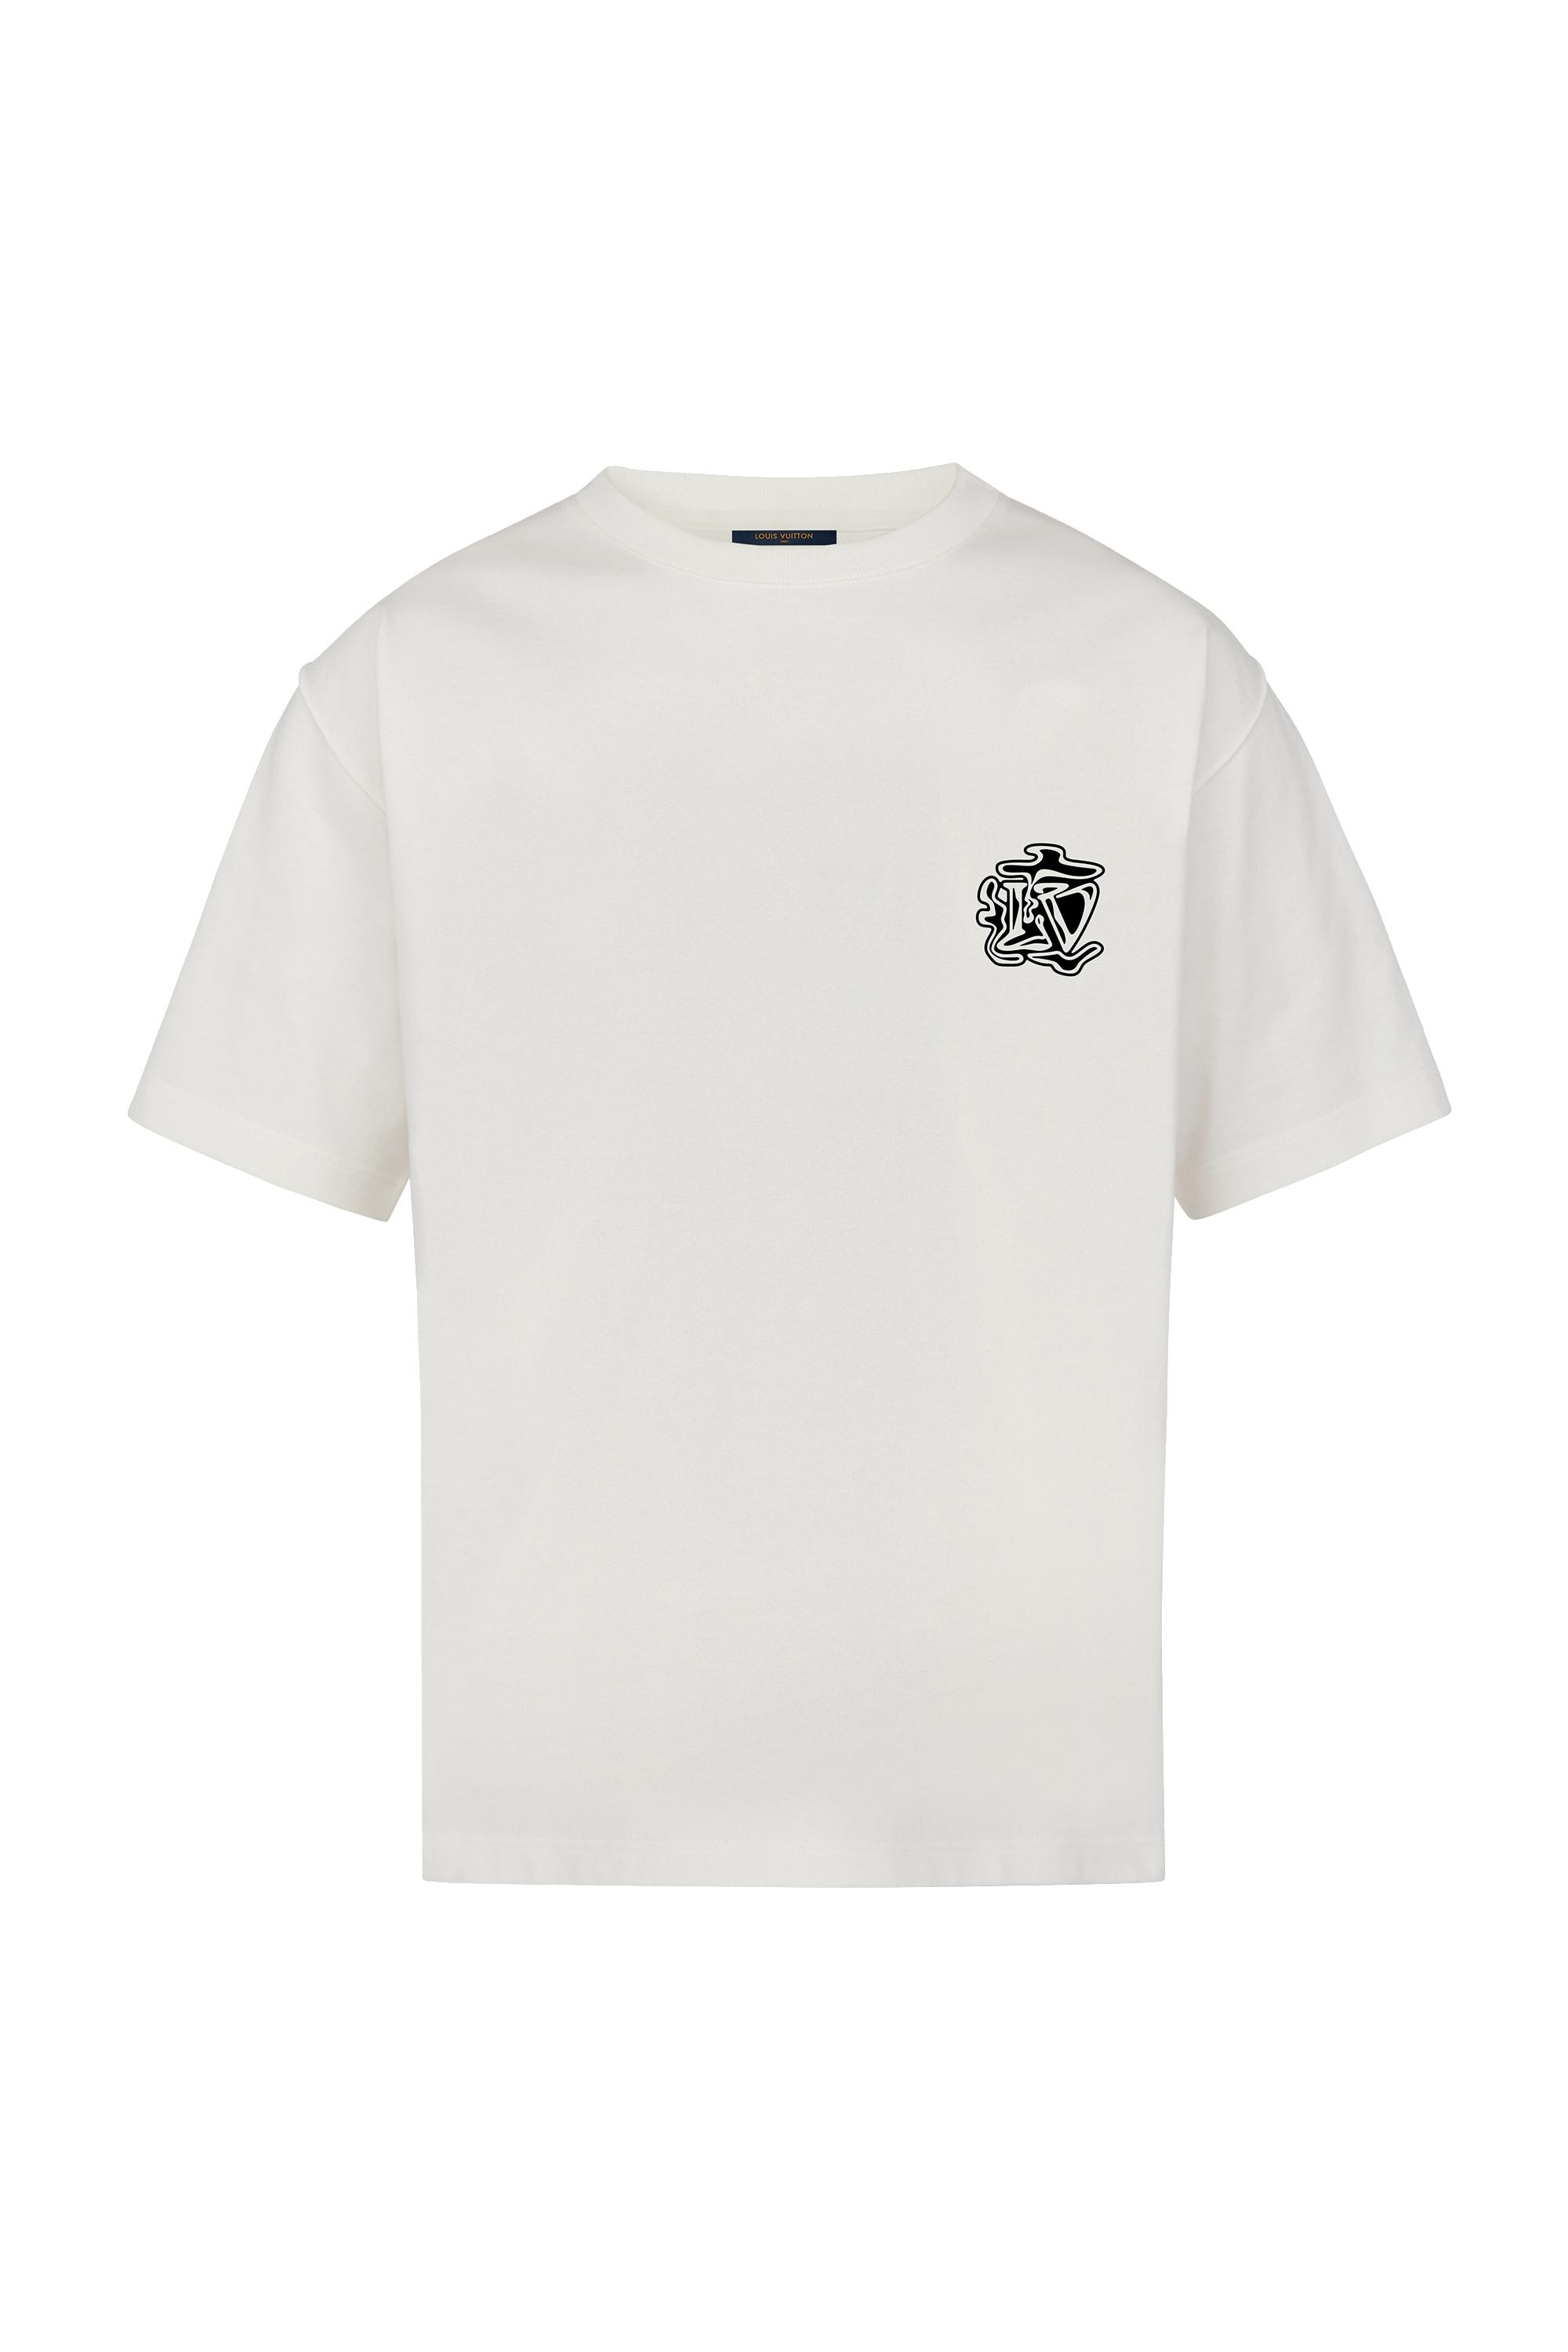 Lv Smoke Printed Tee In White